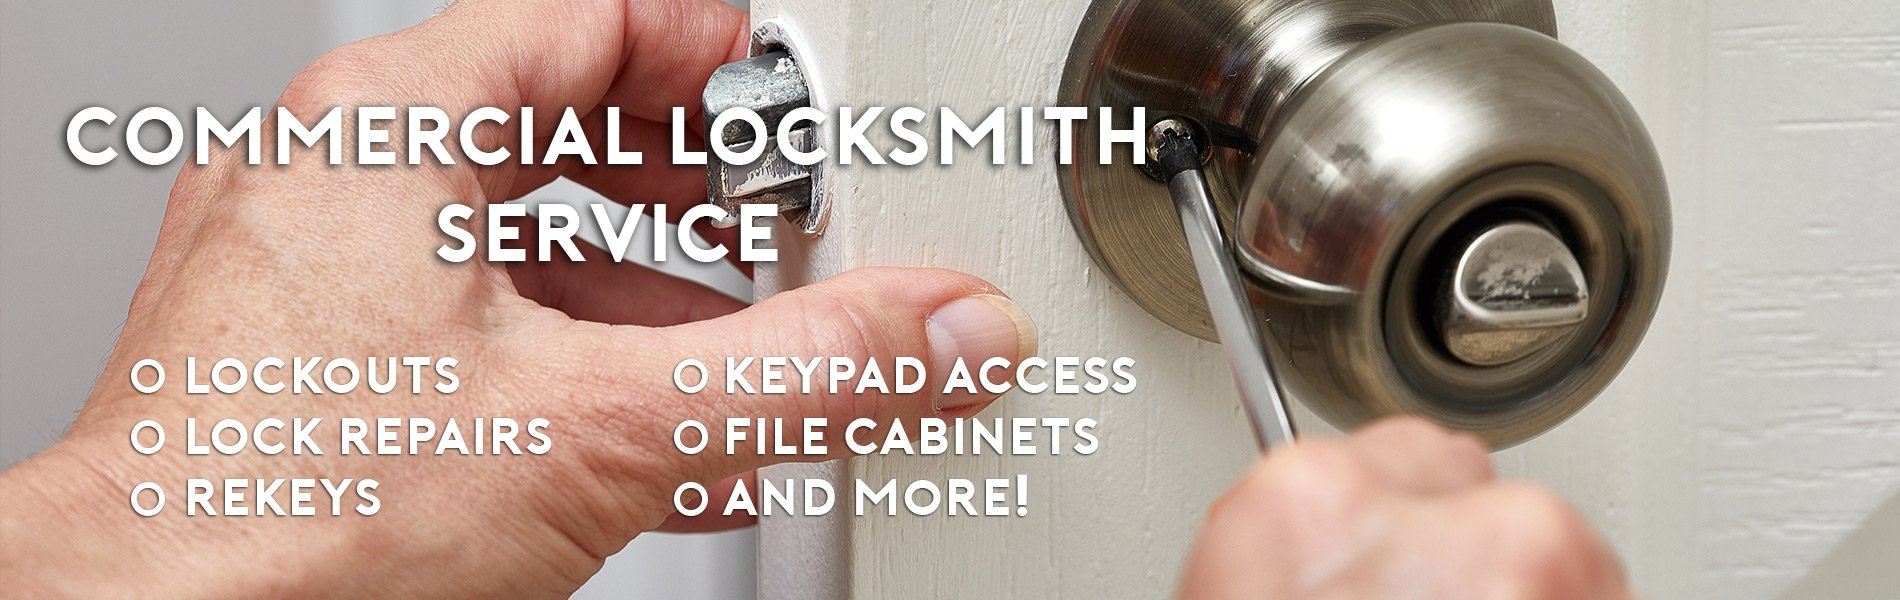 City Locksmith Shop Cayce, SC 803-274-1628